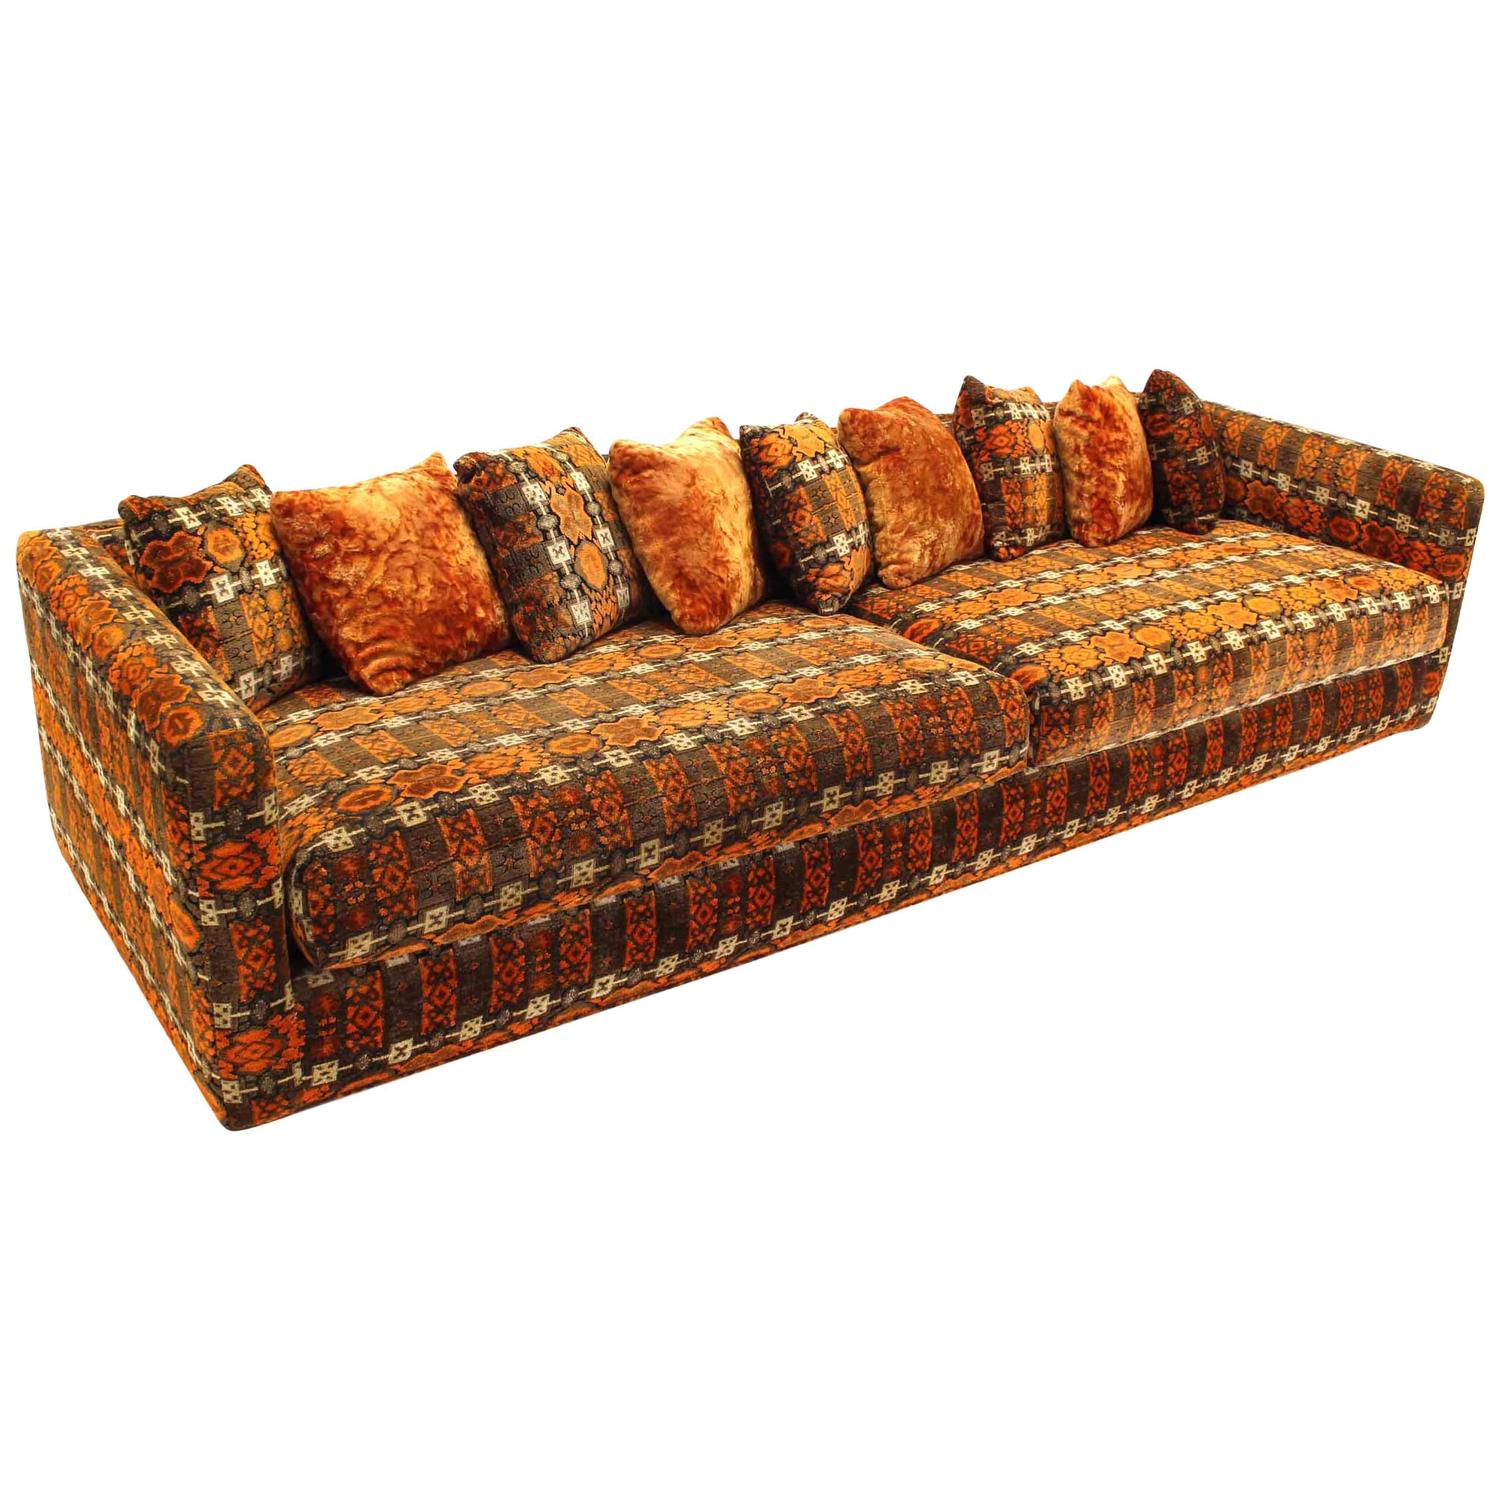 Extra long mid century modern sofa for sale at 1stdibs for Long couches for sale